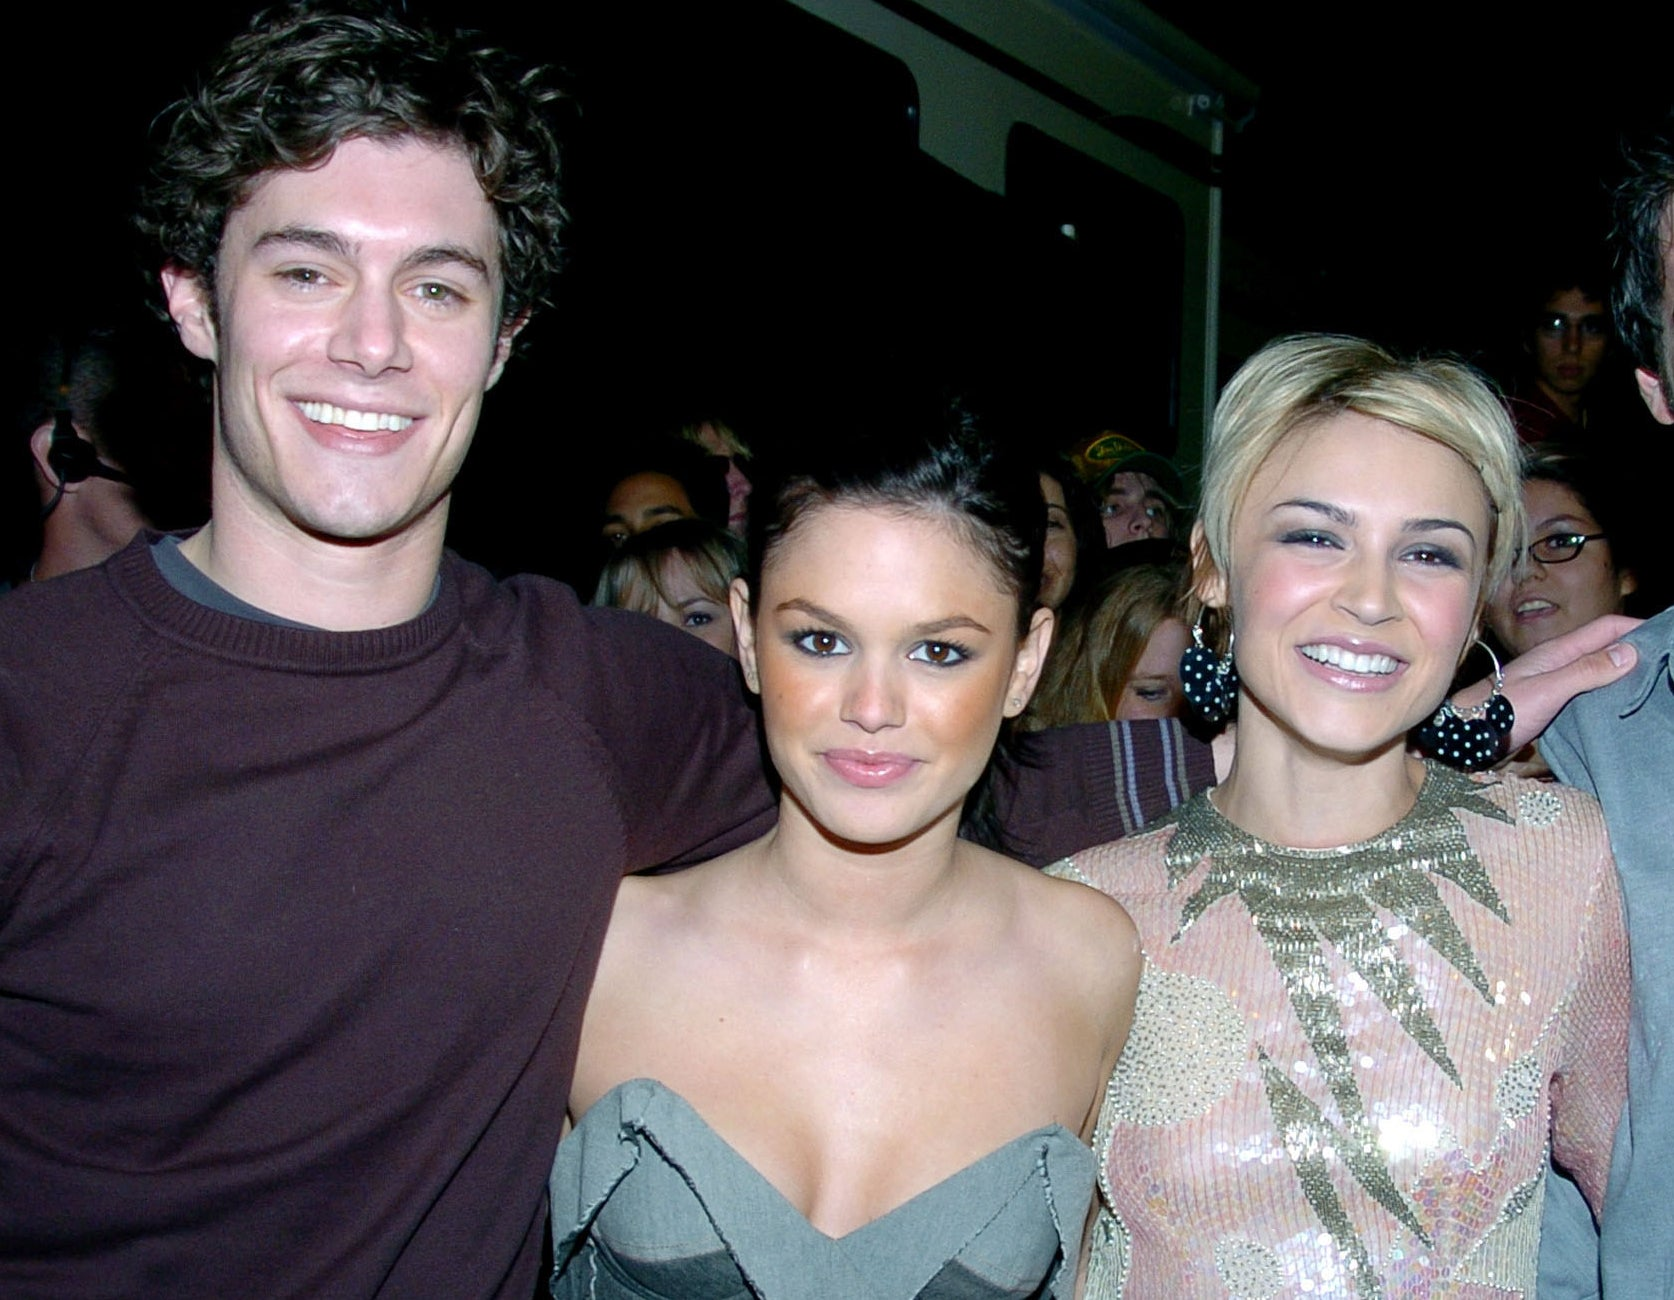 Adam smiles while standing next to Rachel and Samaire